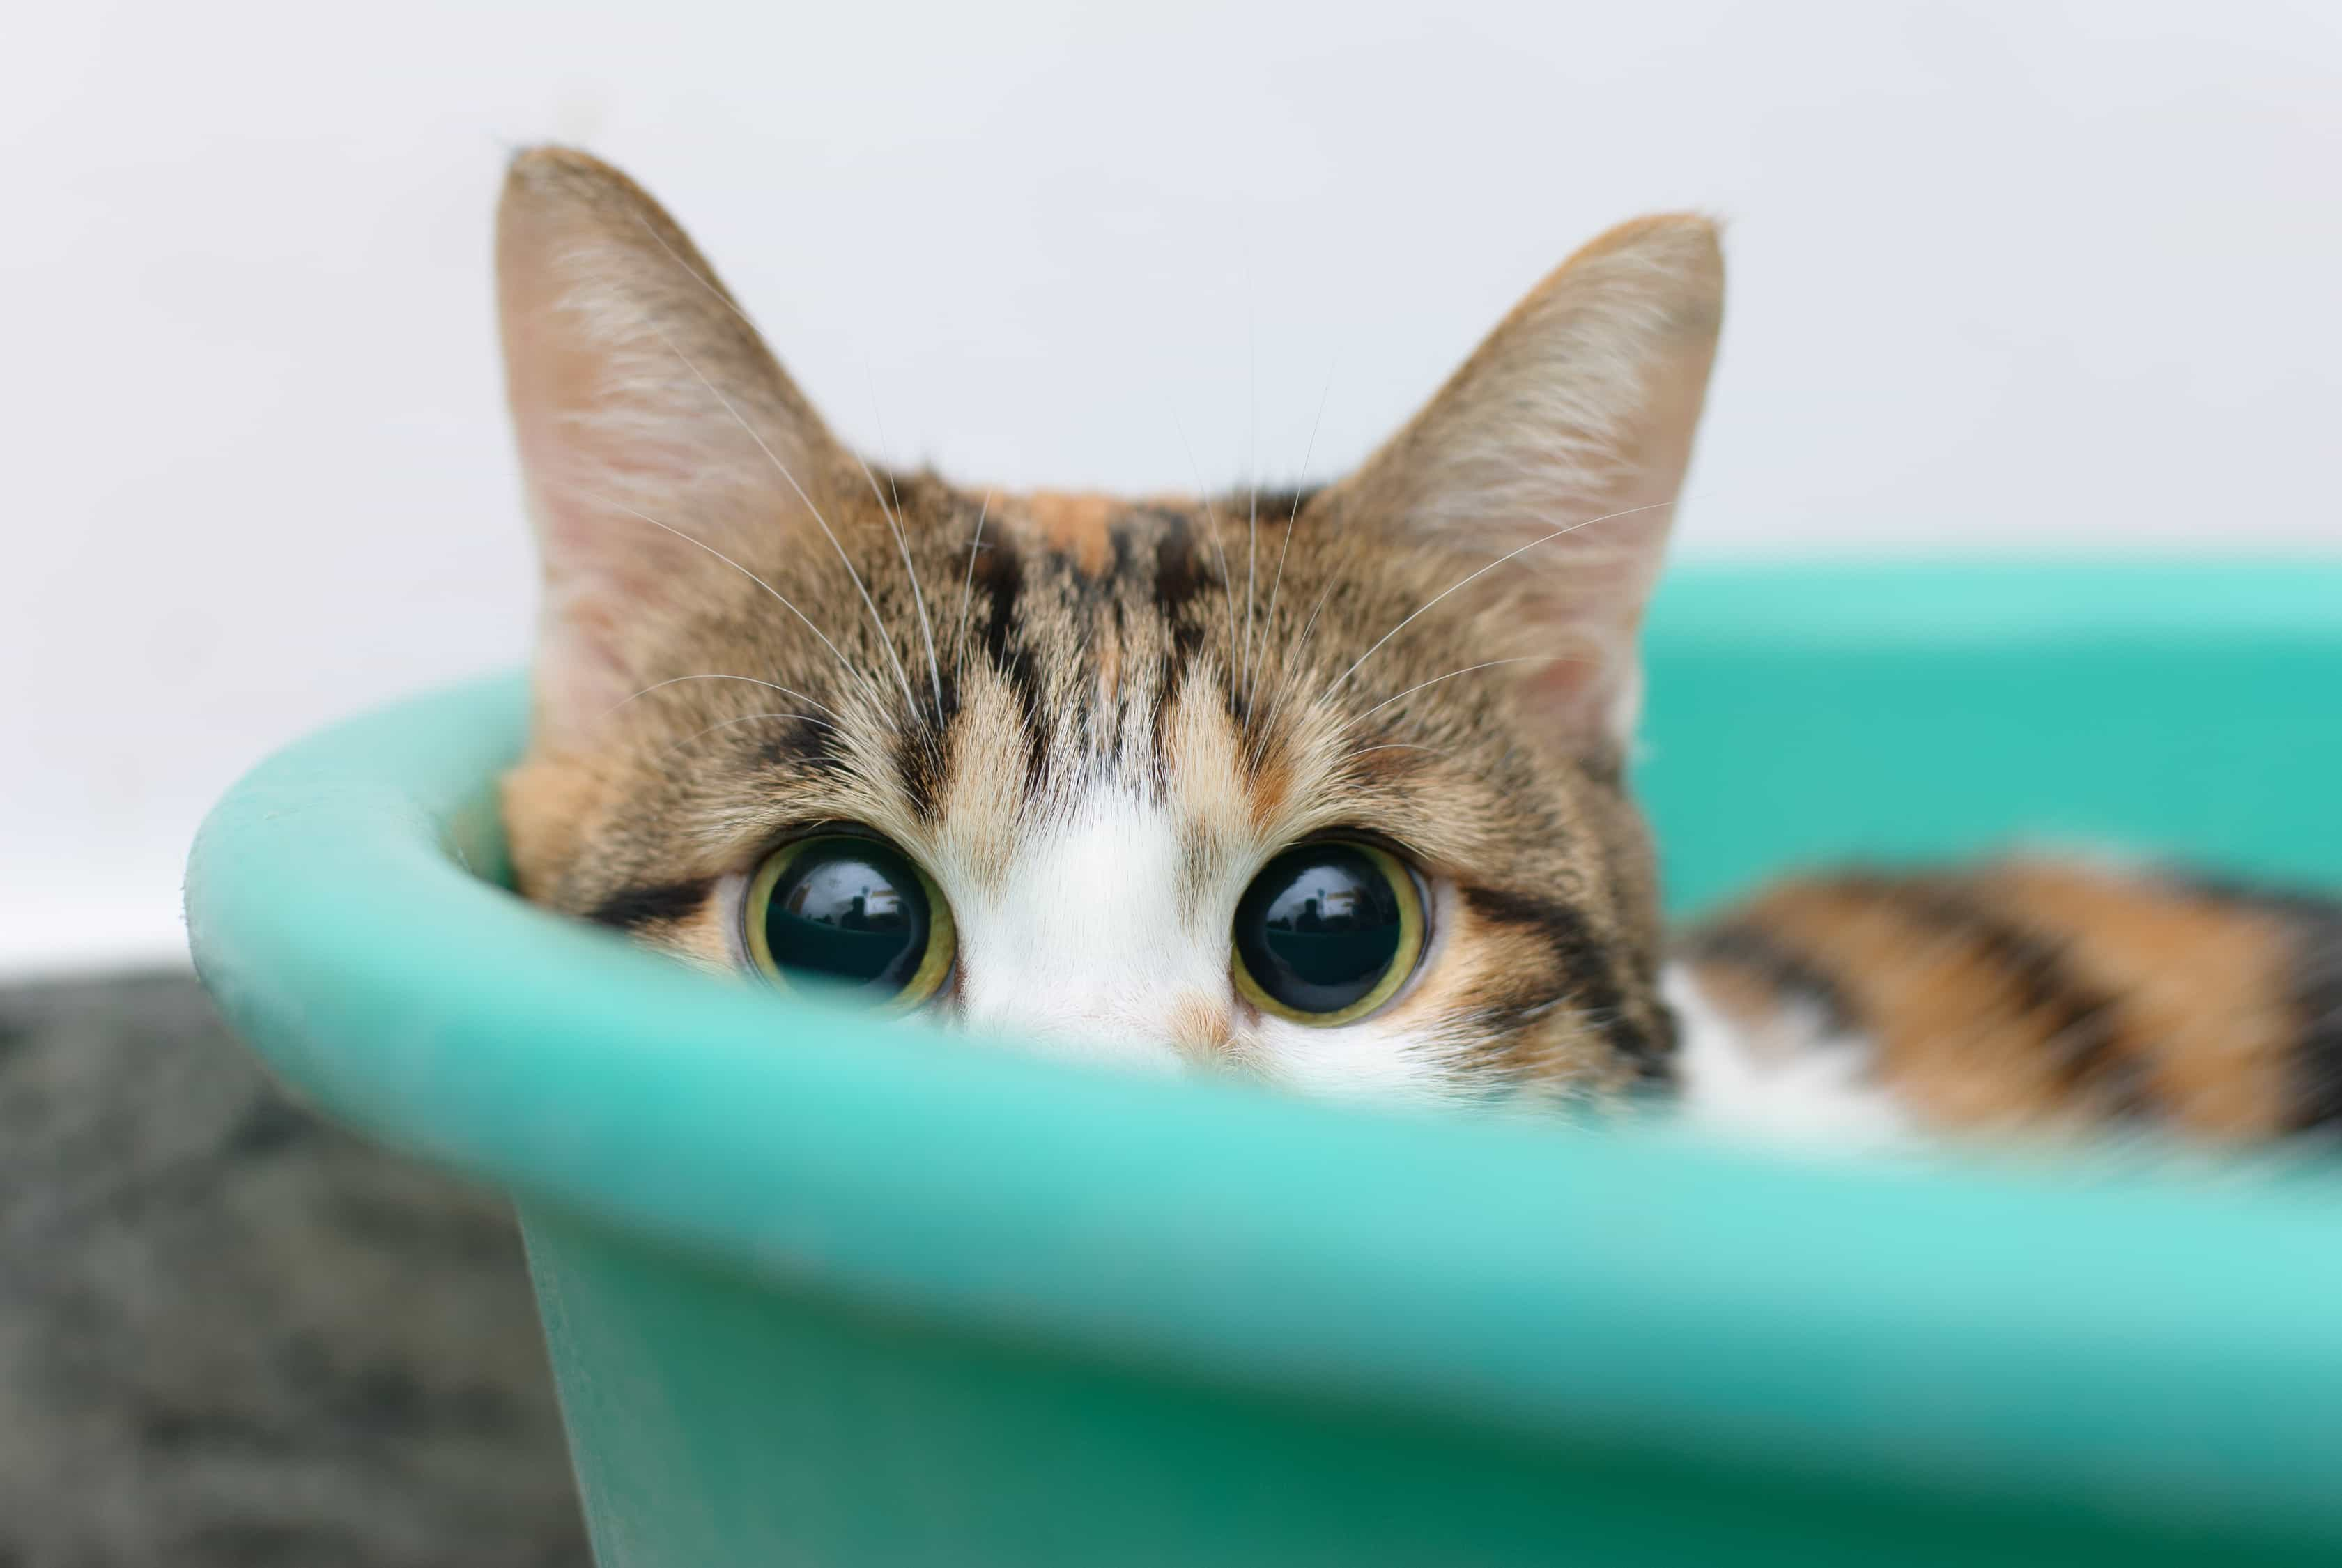 A brown, white and orange cat with green eyes laying in a blue plastic bucket